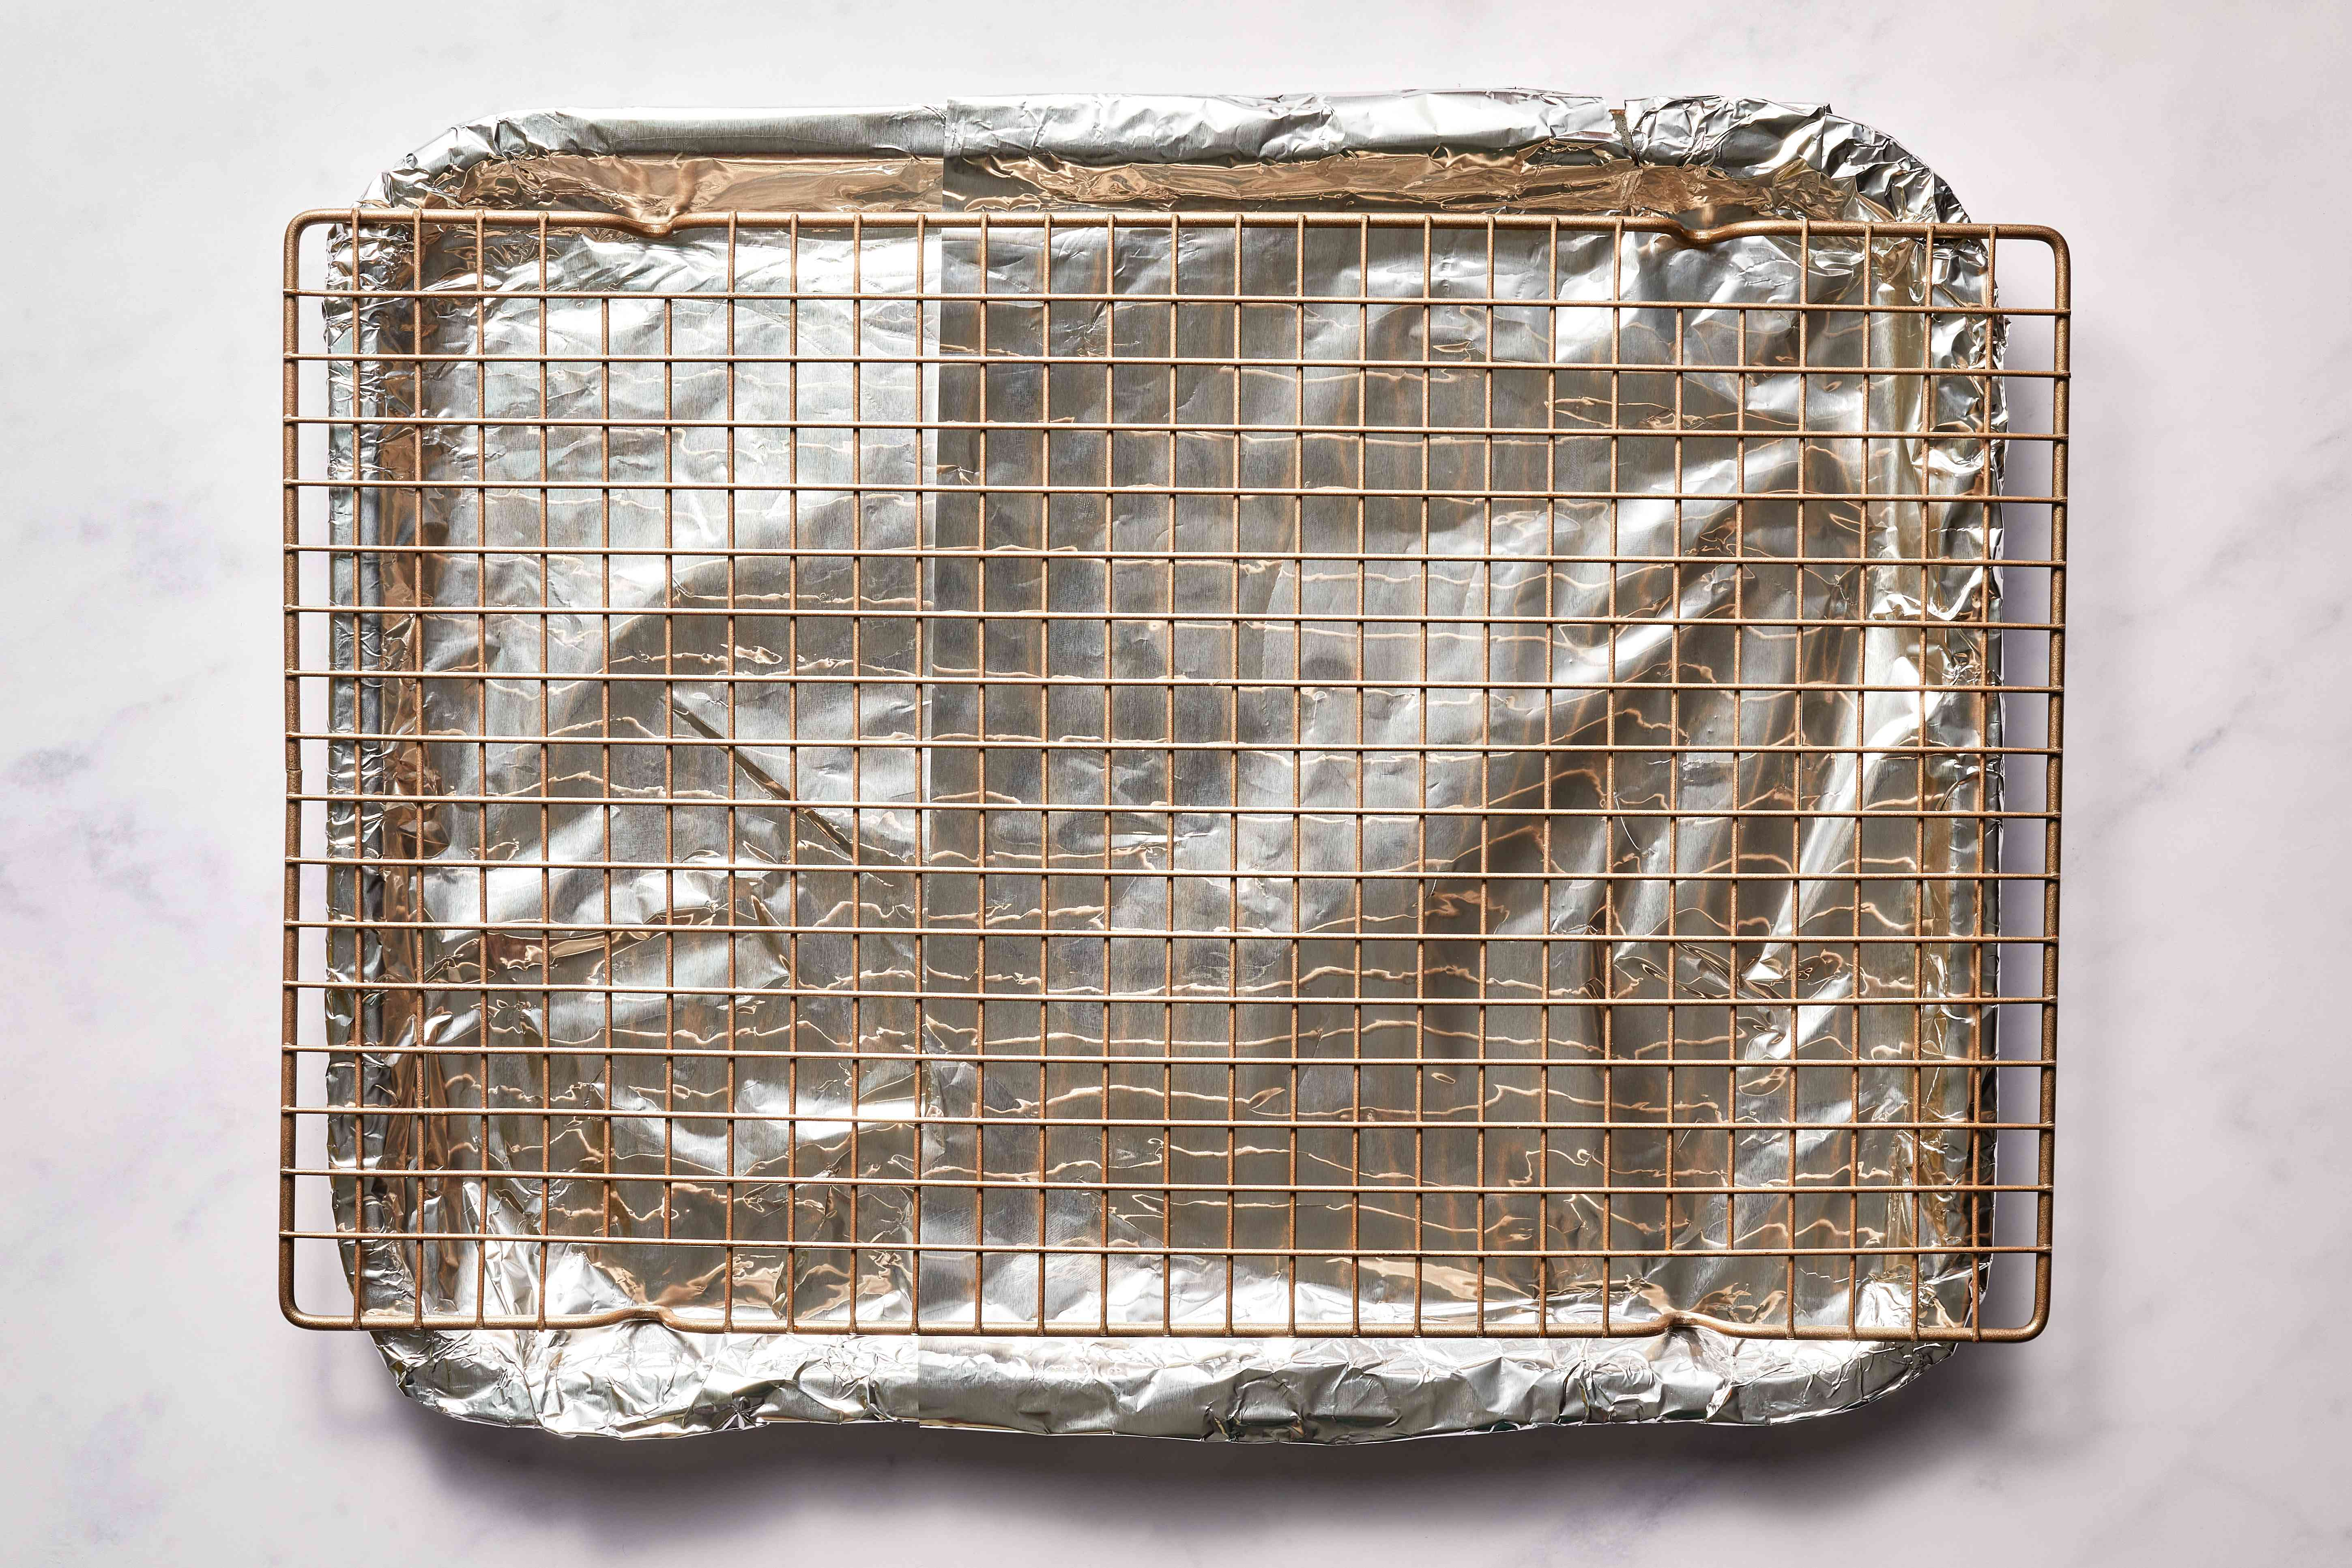 baking sheet with a cooling rack on top